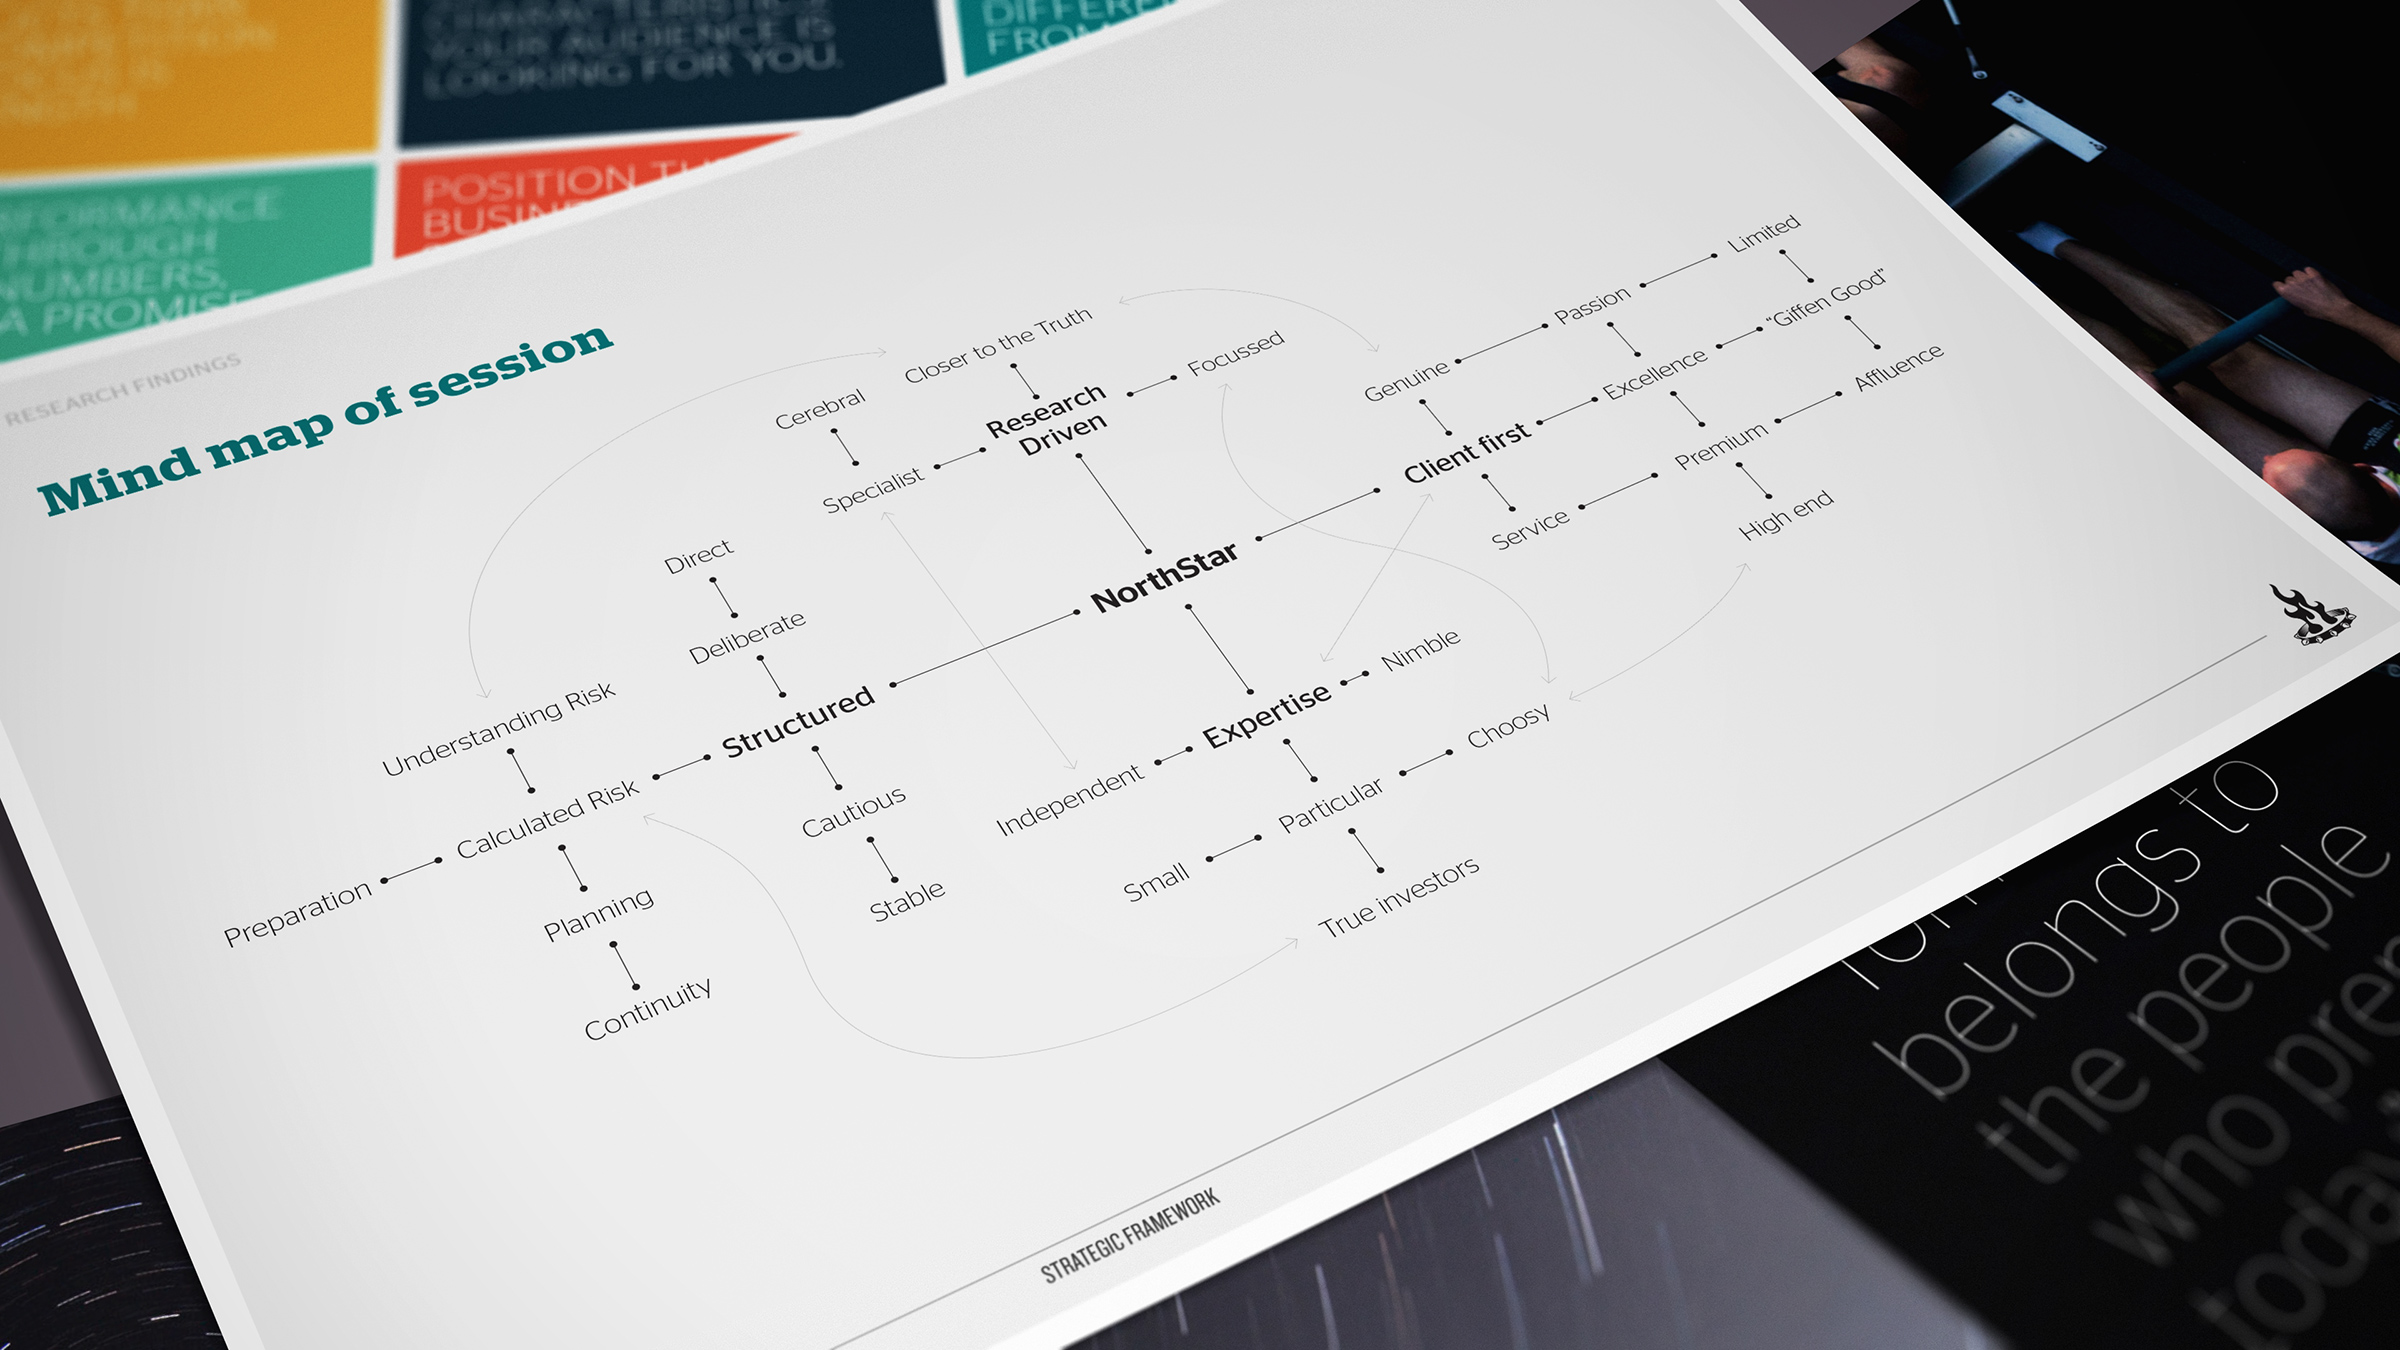 We combined the themes gleaned from research into a positioning mind map.